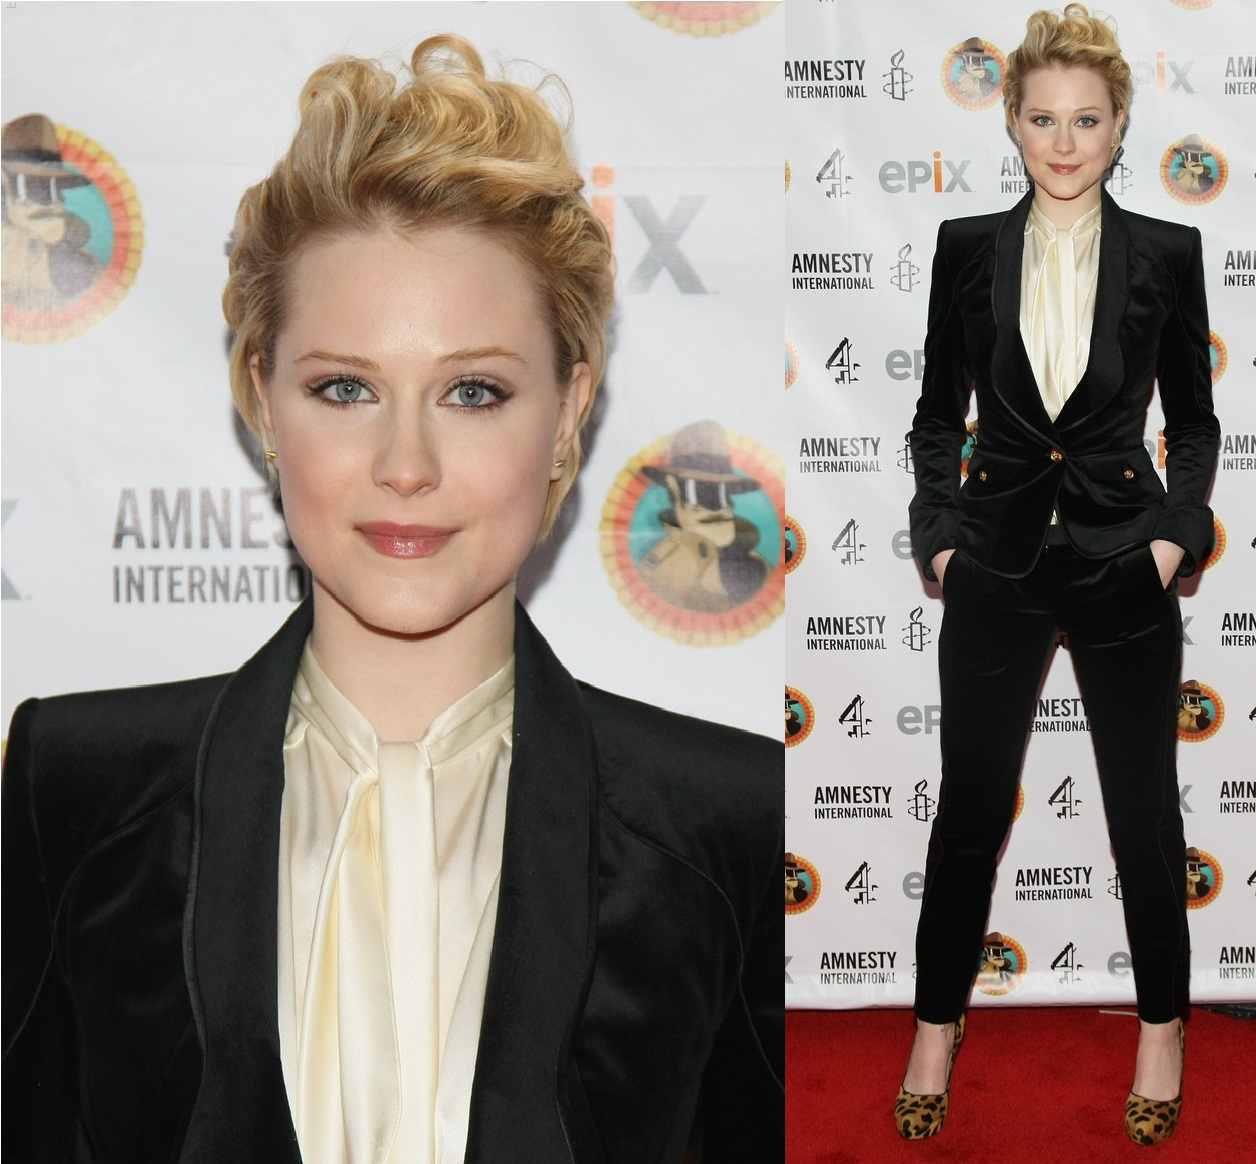 http://3.bp.blogspot.com/-ezAwNT0V1aI/T1U3XOci_RI/AAAAAAAAFXk/yThjjUuDjwk/s1600/evan-rachel-wood+in+jason+wu+fall+2012-amnesty-international-ball-.jpg